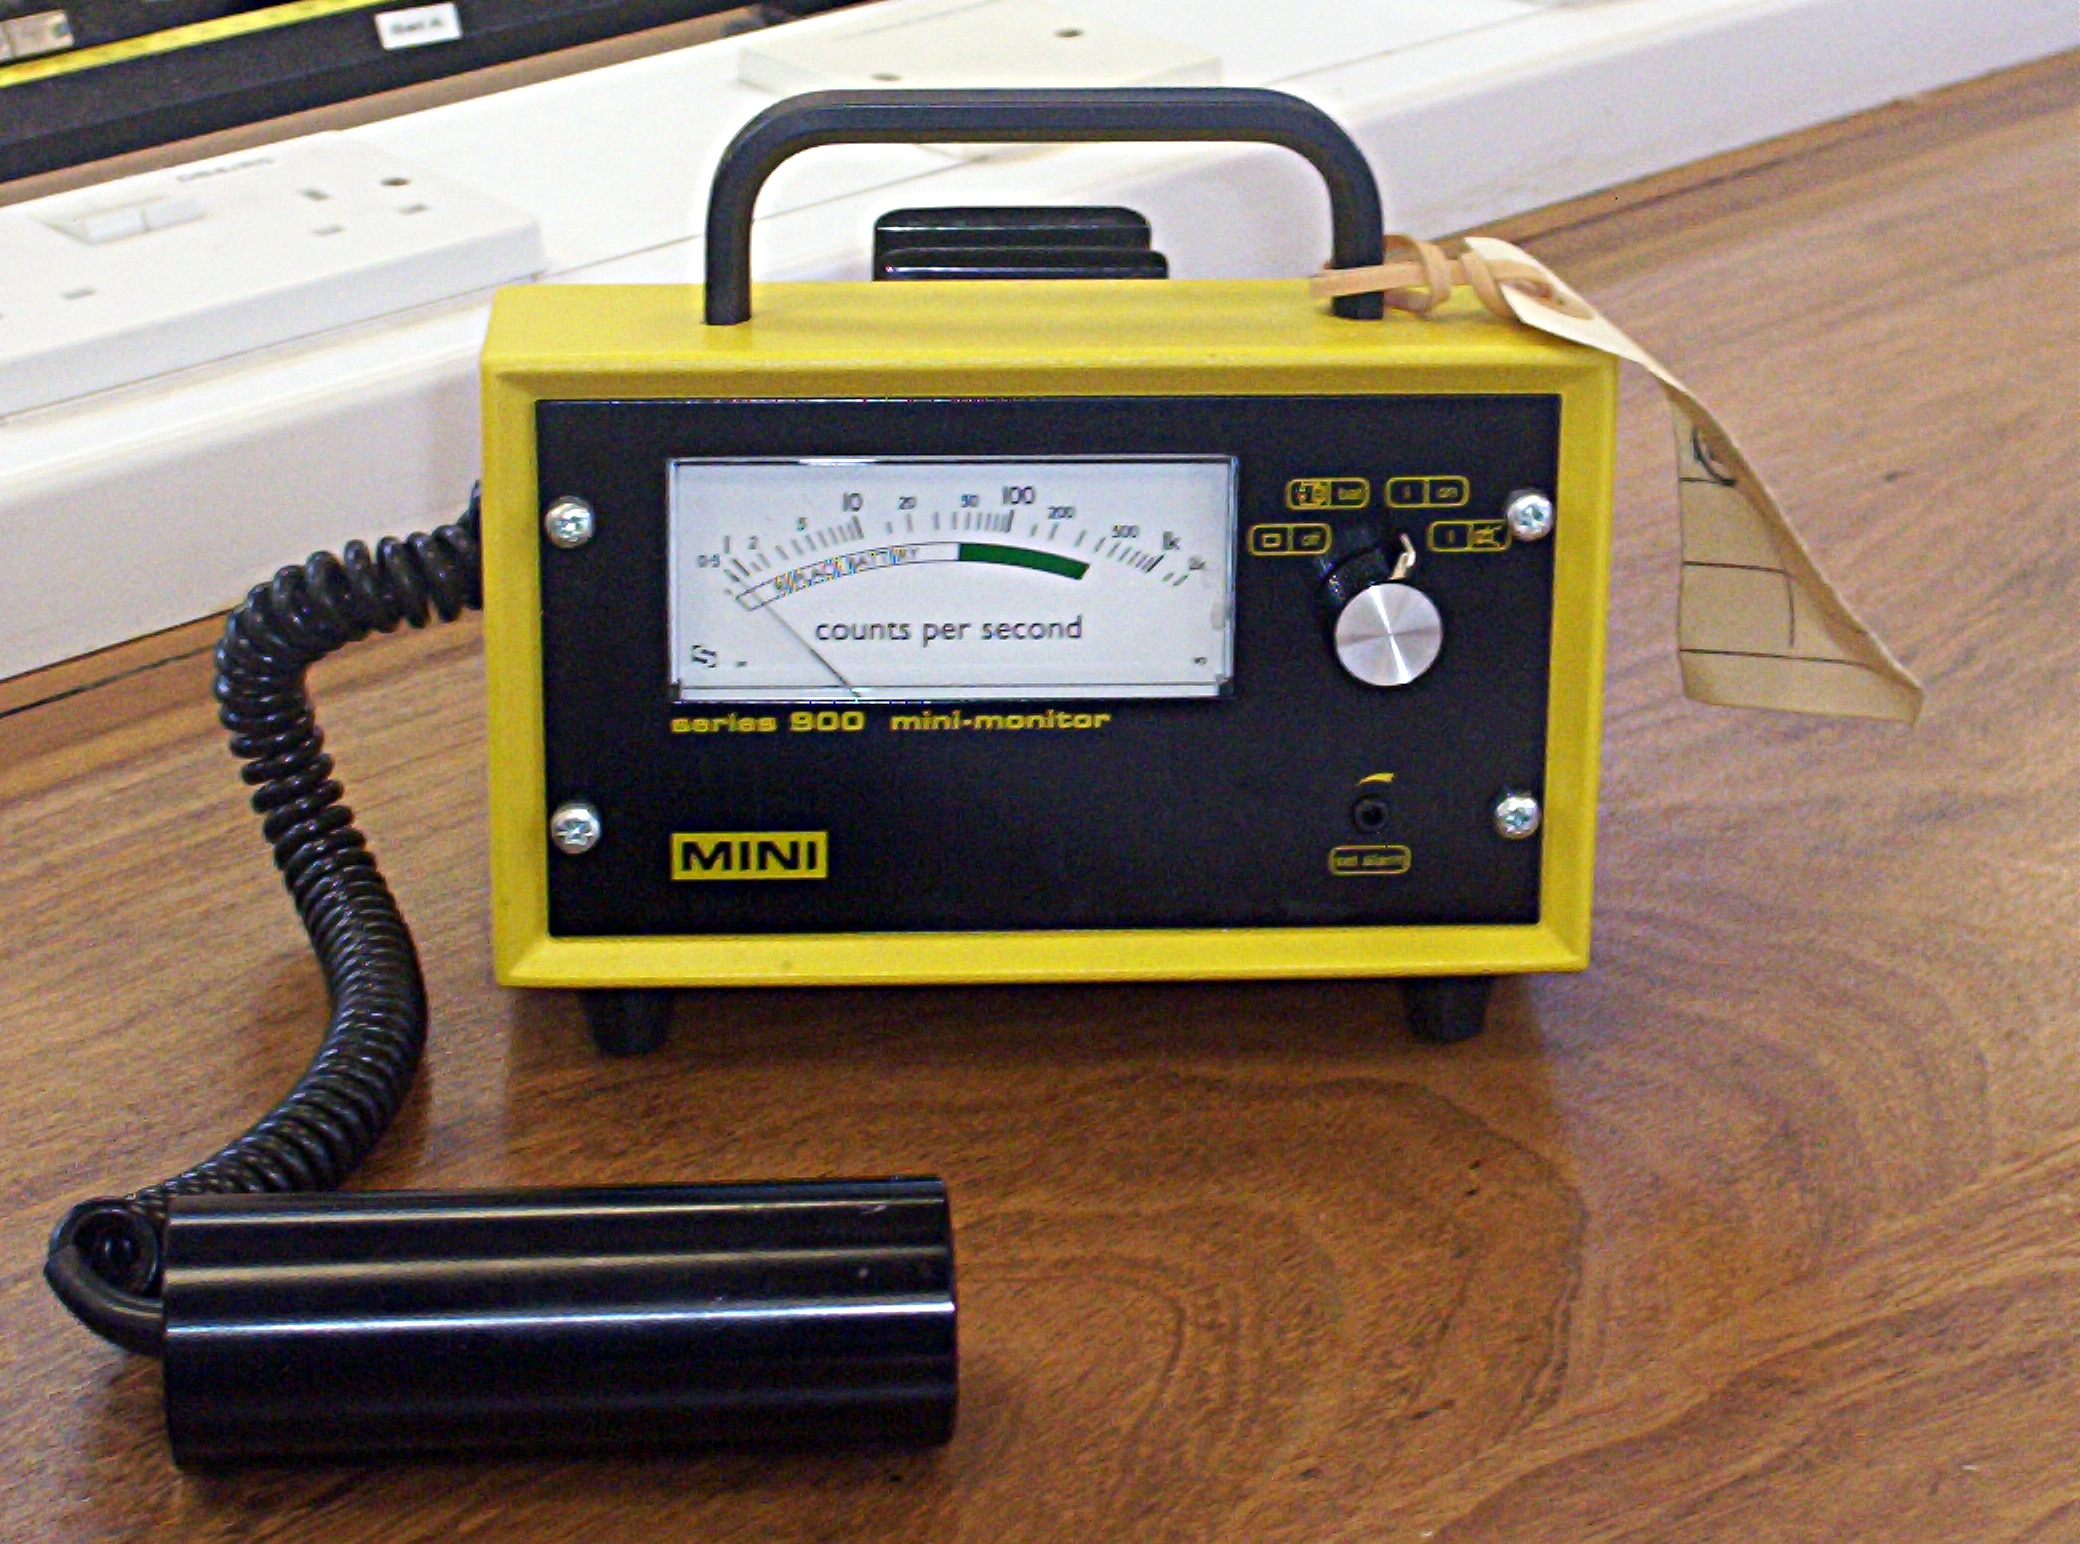 Counter Image : File:Geiger counter.jpg - Wikipedia, the free encyclopedia